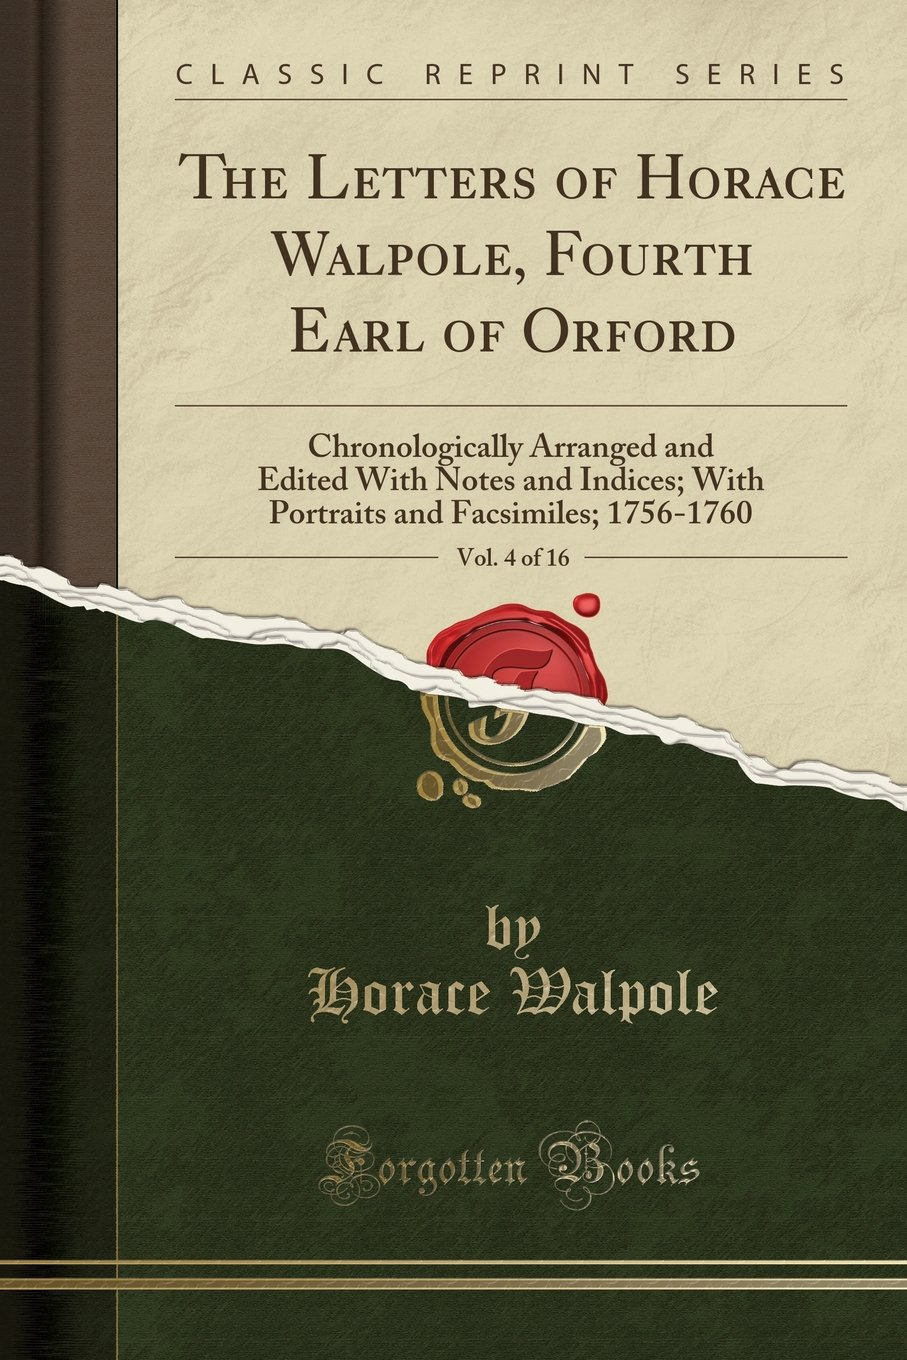 The Letters of Horace Walpole, Fourth Earl of Orford, Vol. 4 of 16: Chronologically Arranged and Edited With Notes and Indices; With Portraits and Facsimiles; 1756-1760 (Classic Reprint) pdf epub